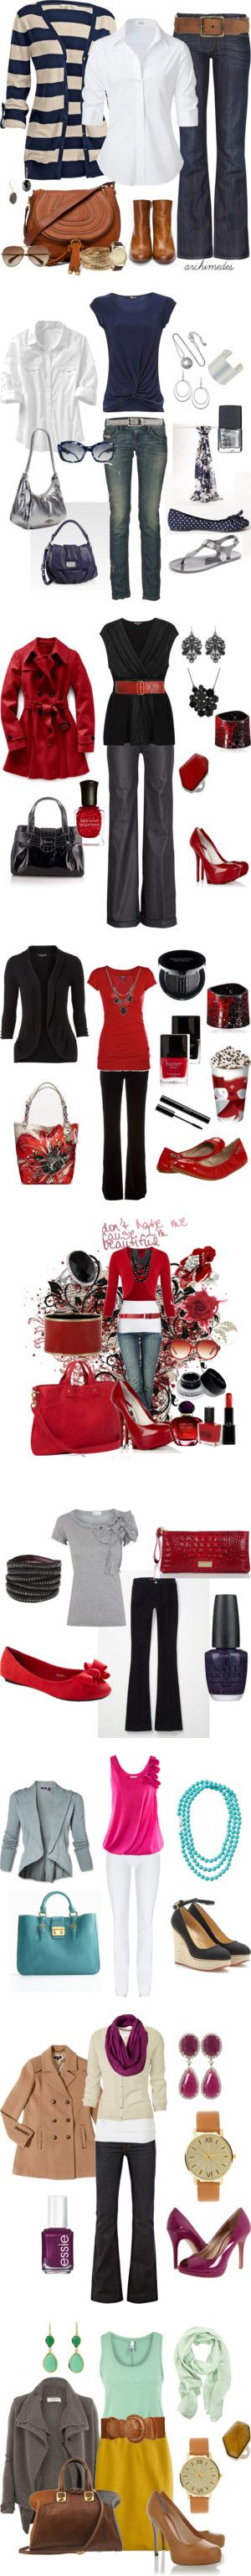 """""""Workin' 9-5"""" by riddlechick on Polyvore"""